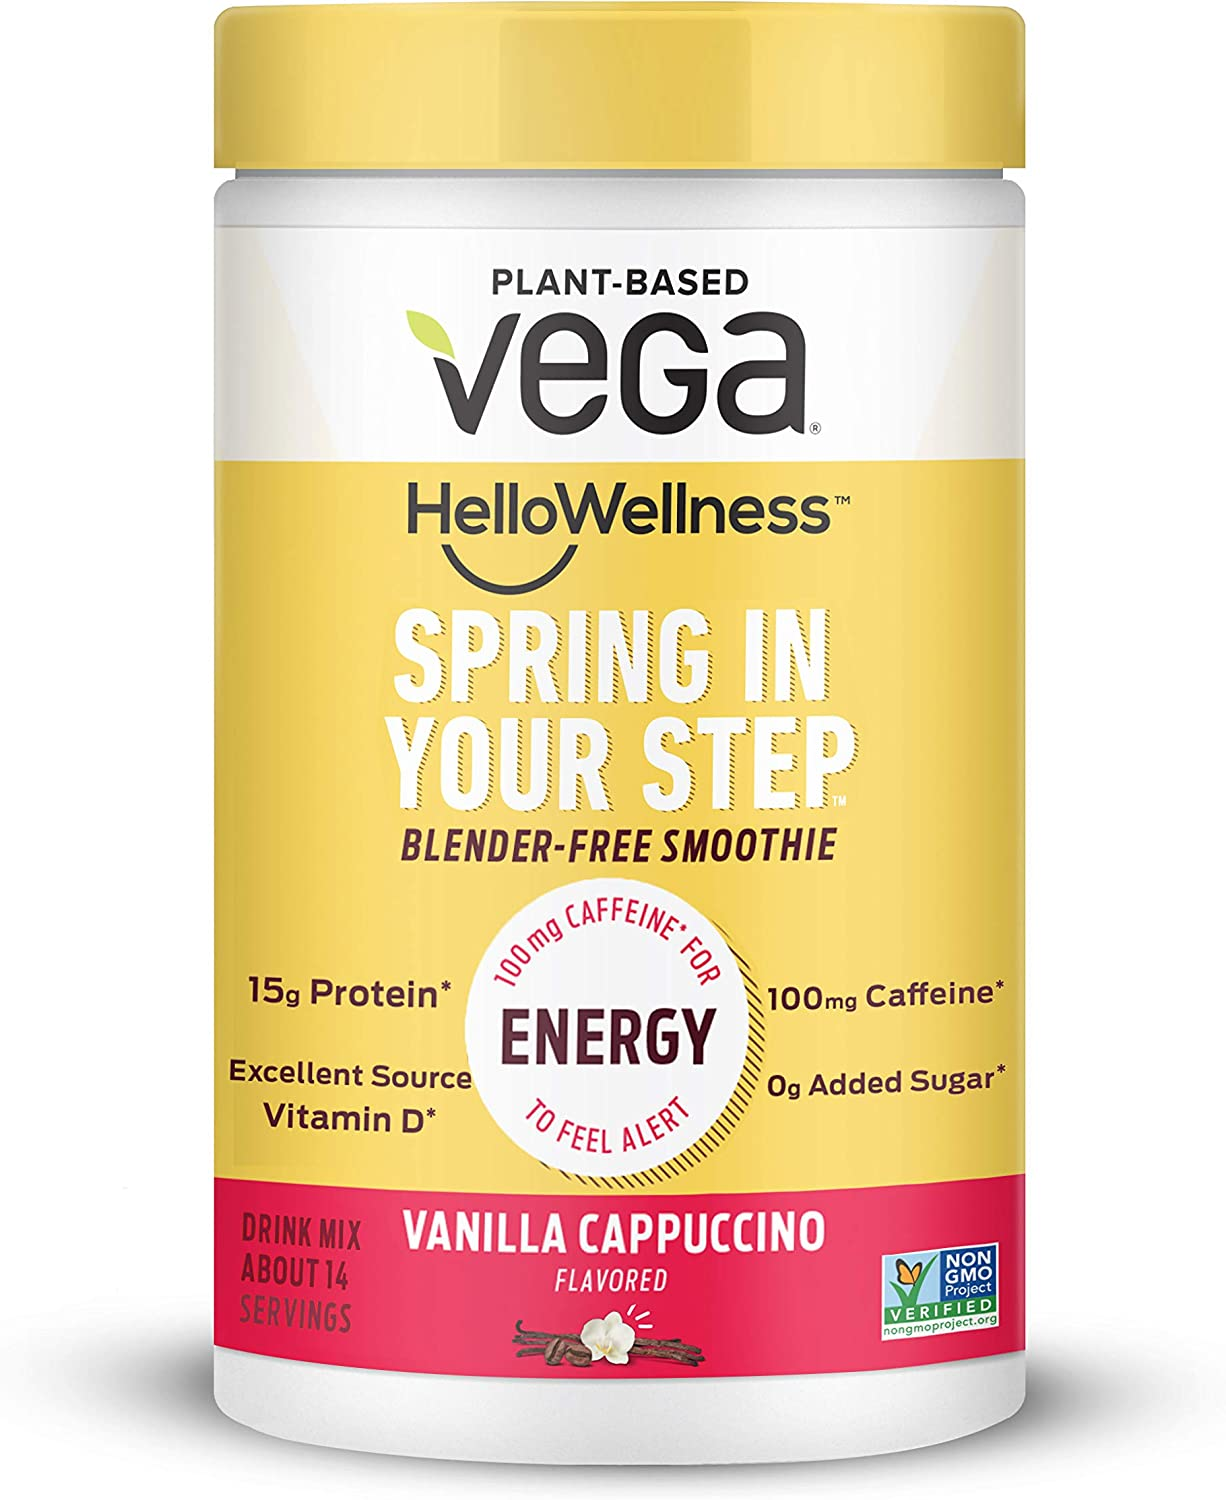 Vega Hello Wellness Spring in Your Step Blender Free Smoothie 14 Servings oz Plant Based Vegan Protein Powder 100mg Caffeine Vitamin D, Energy - Vanilla Cappuccino, 13.8 Ounce